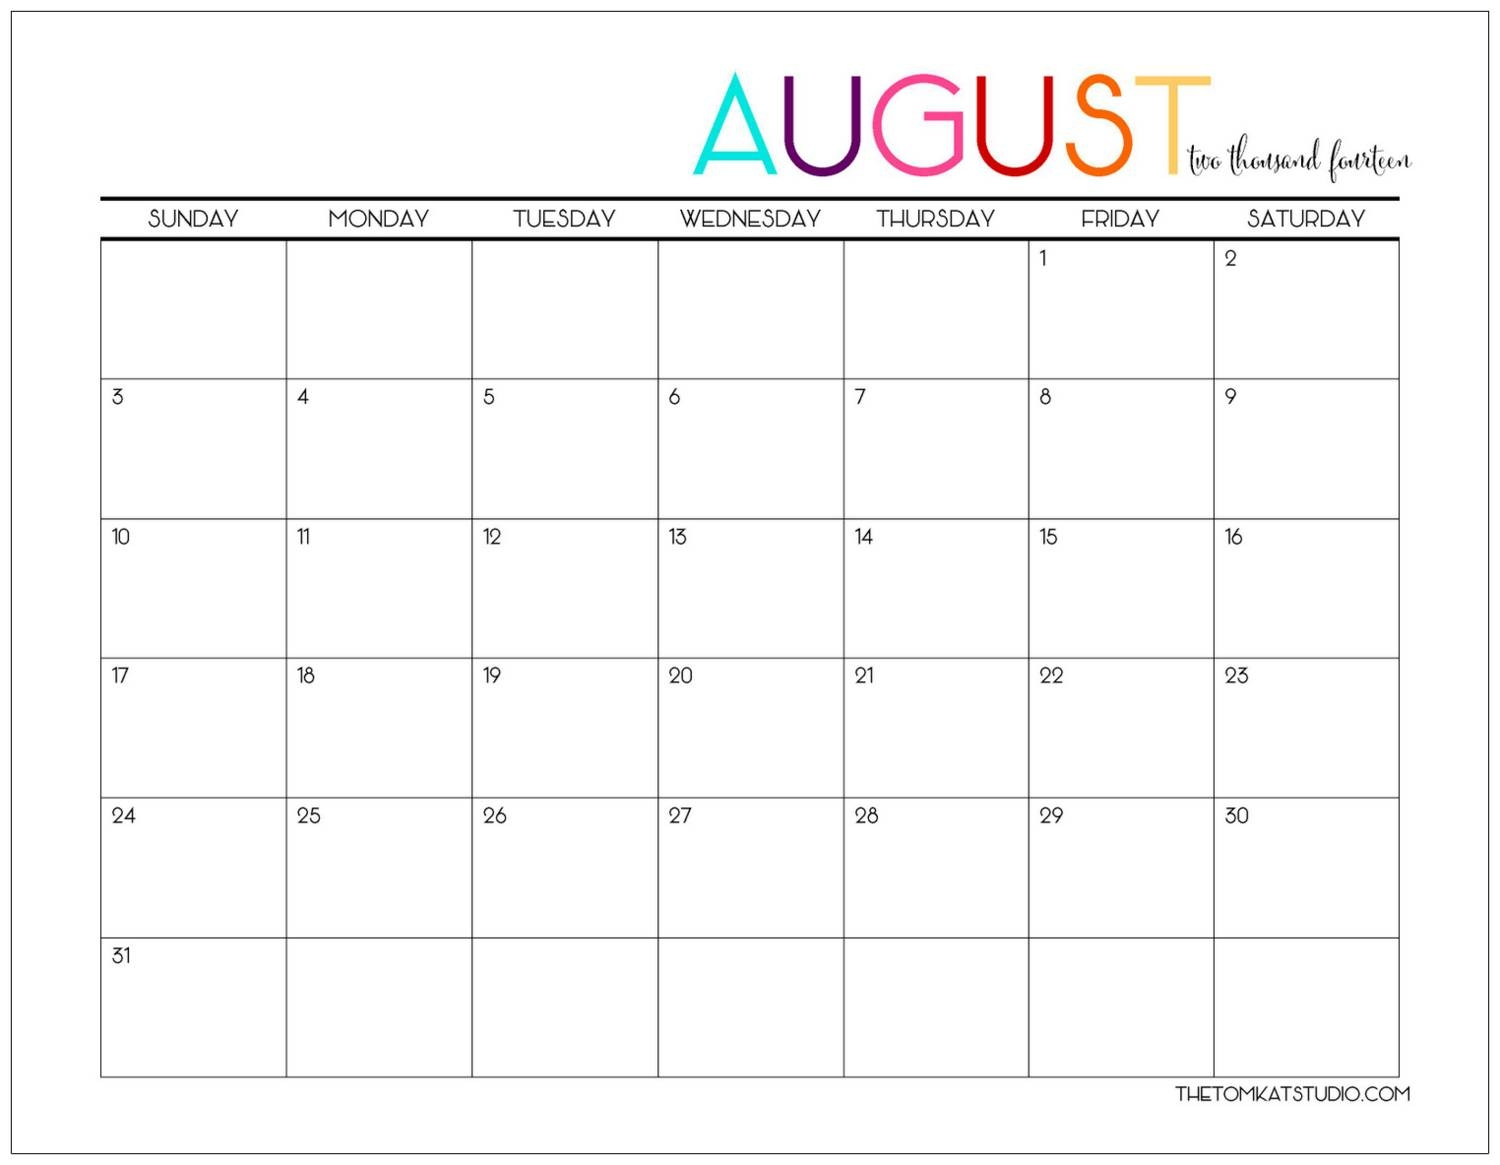 august calendar the tomkat studio Free Pretty Printable Calendars August 2018 erdferdf